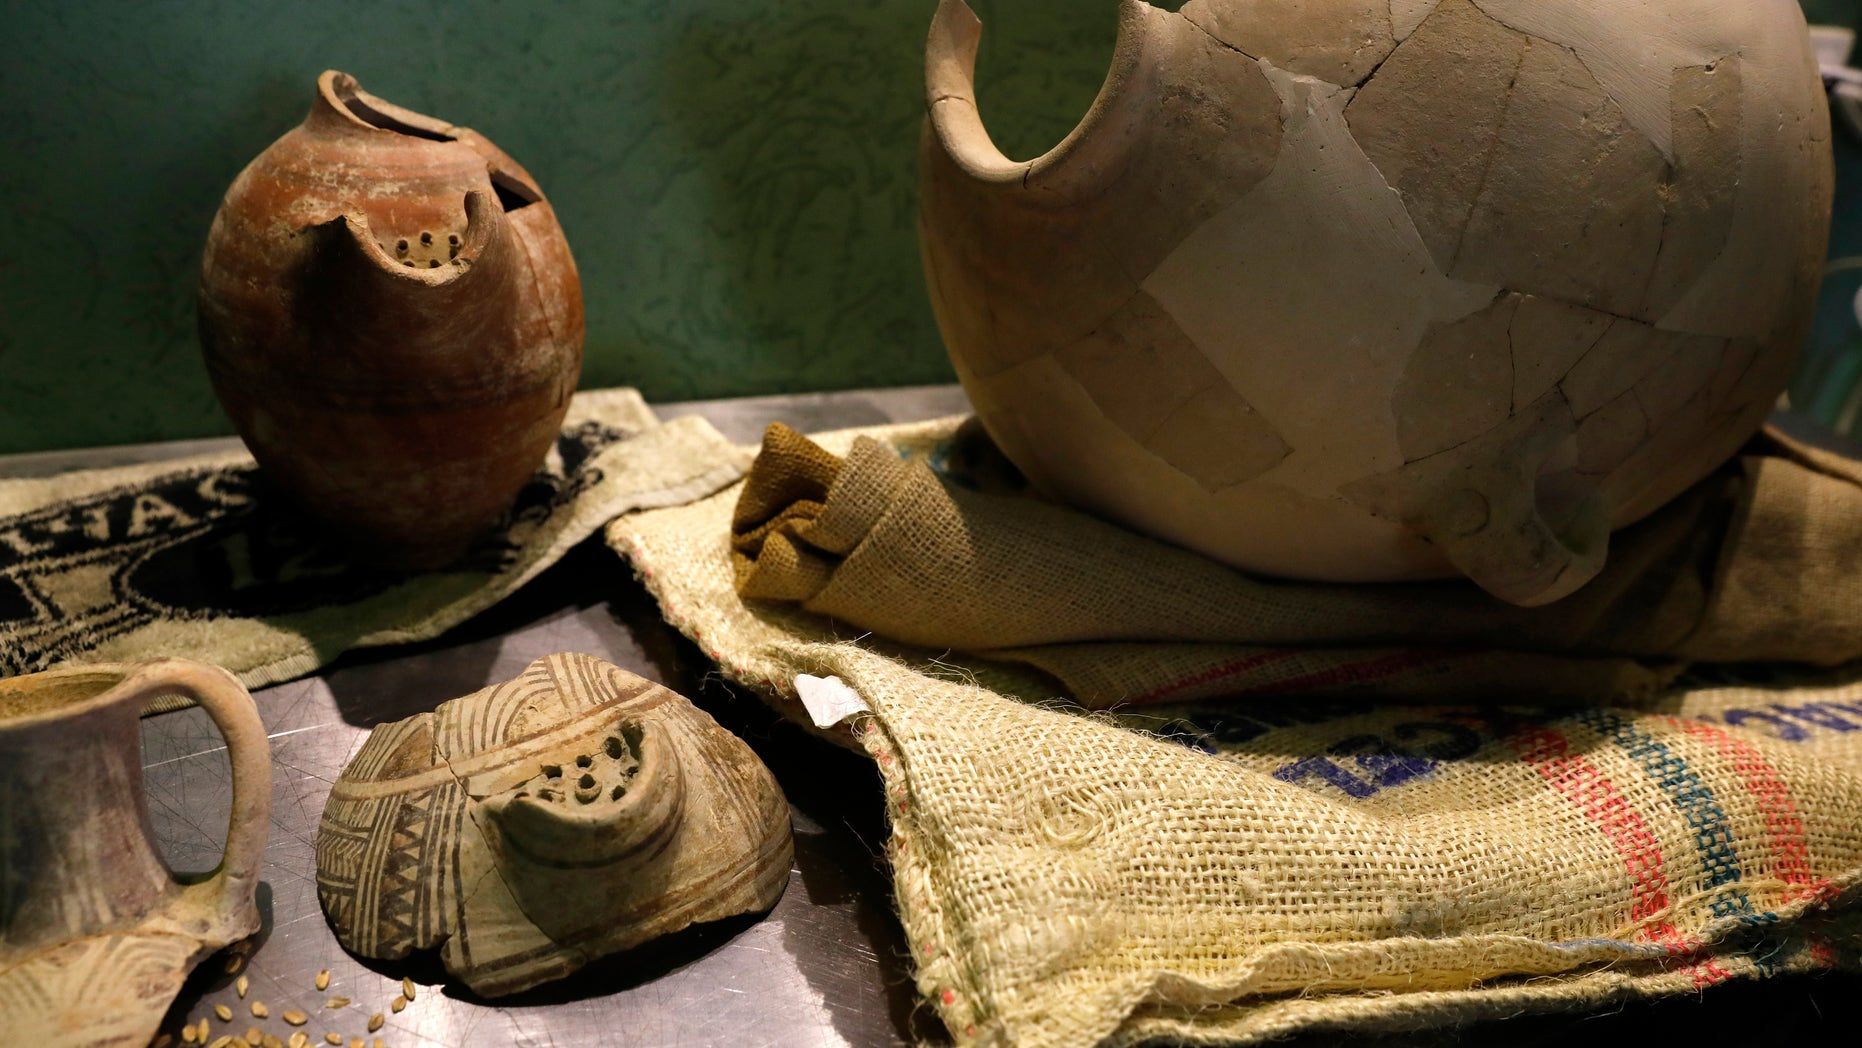 Ancient jars are on display during a press conference in Jerusalem, Wednesday, May 22, 2019. Israeli researchers celebrated Wednesday a long-brewing project of making beer and mead using yeasts extracted from ancient clay vessels -- some over 5,000 years old. (AP Photo/Sebastian Scheiner)